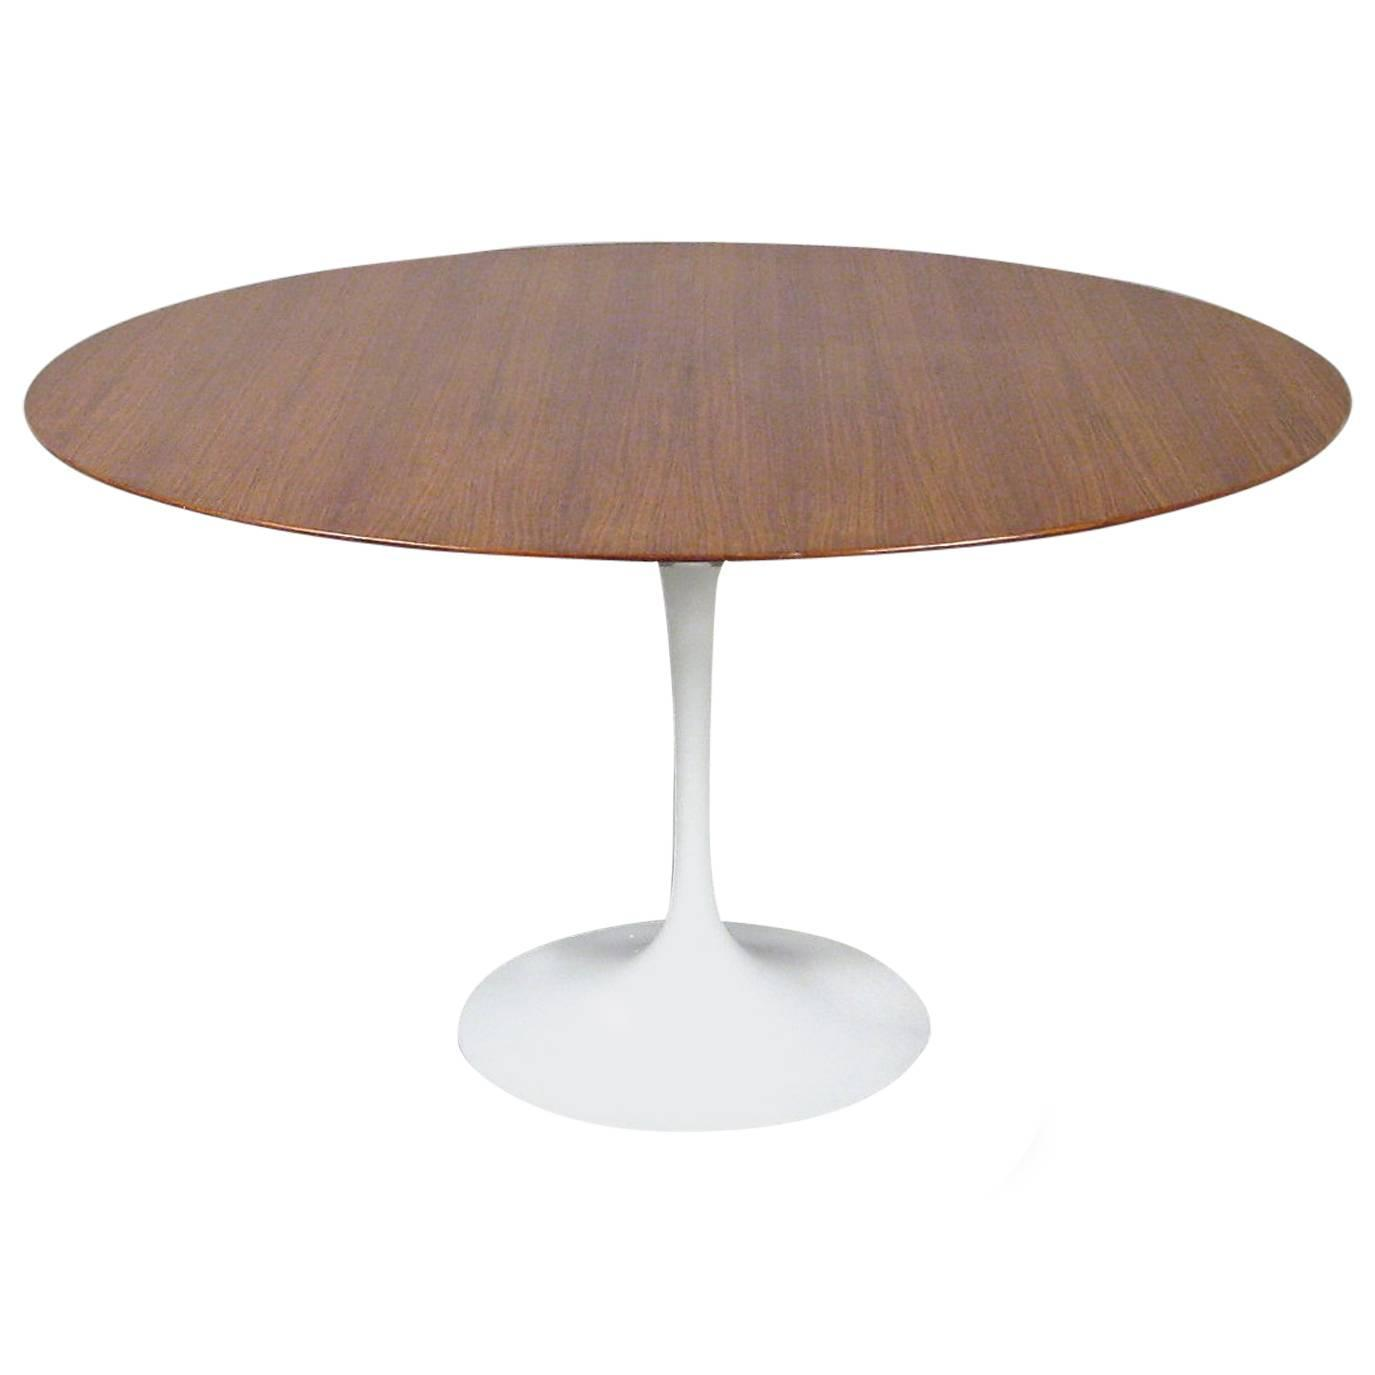 Eero saarinen tulip dining table by knoll circa 1960 for Tulip dining table